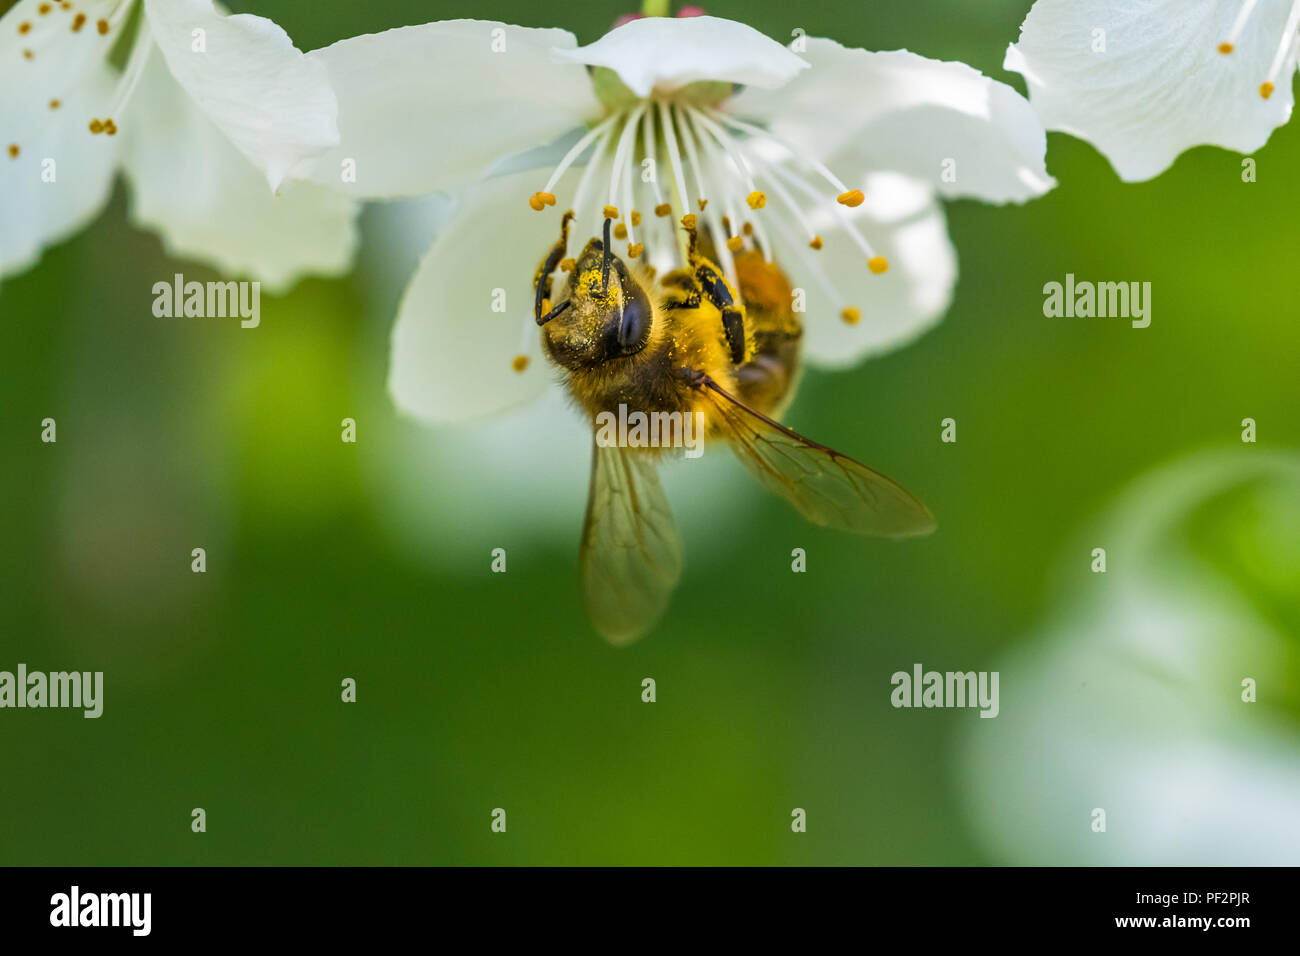 Small yellow bee pollinating a white spring blossom of a cherry. Nice macro shot with a blurred green background. Many details in the picture. A bee c - Stock Image